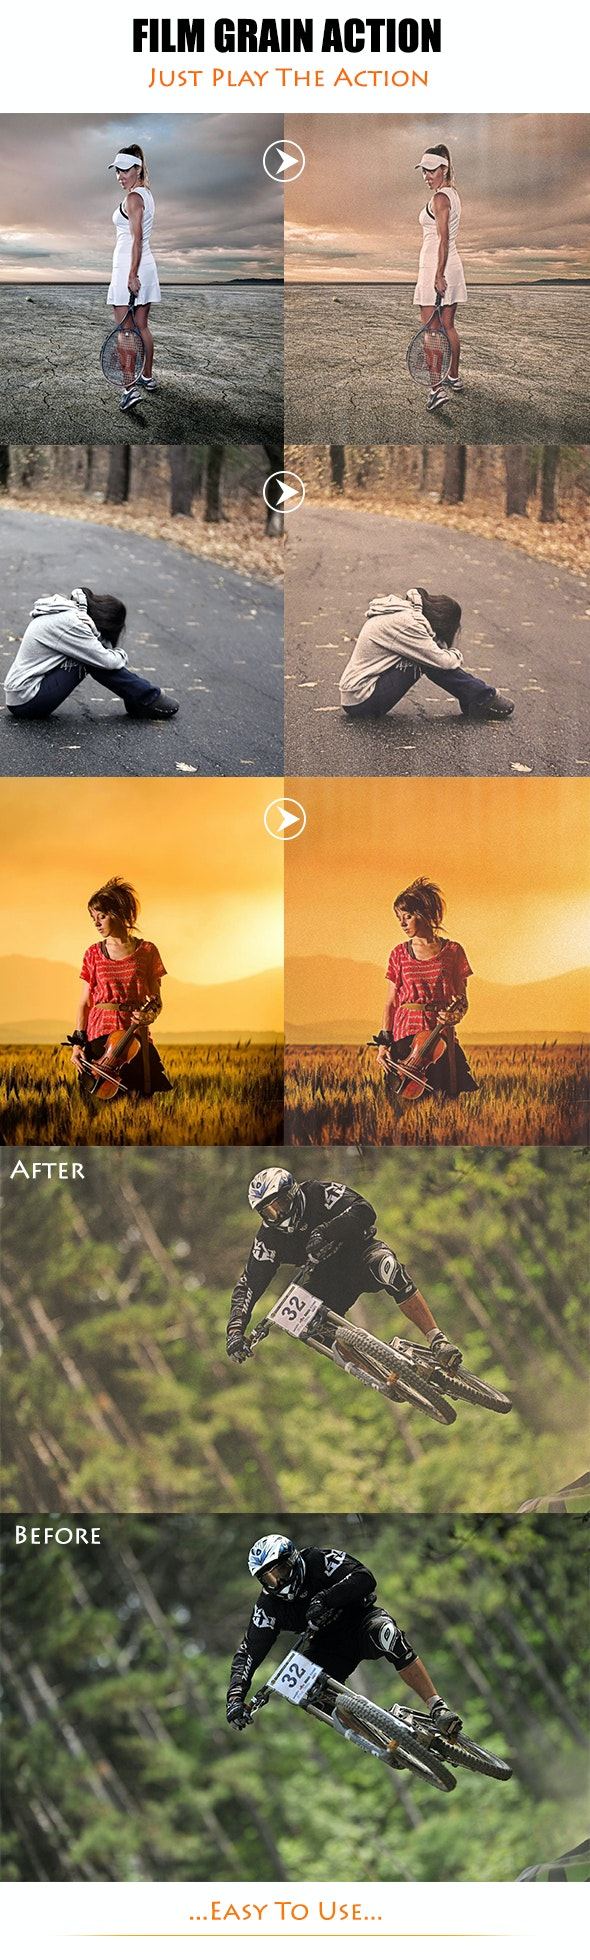 Film Grain Action - Photoshop Add-ons